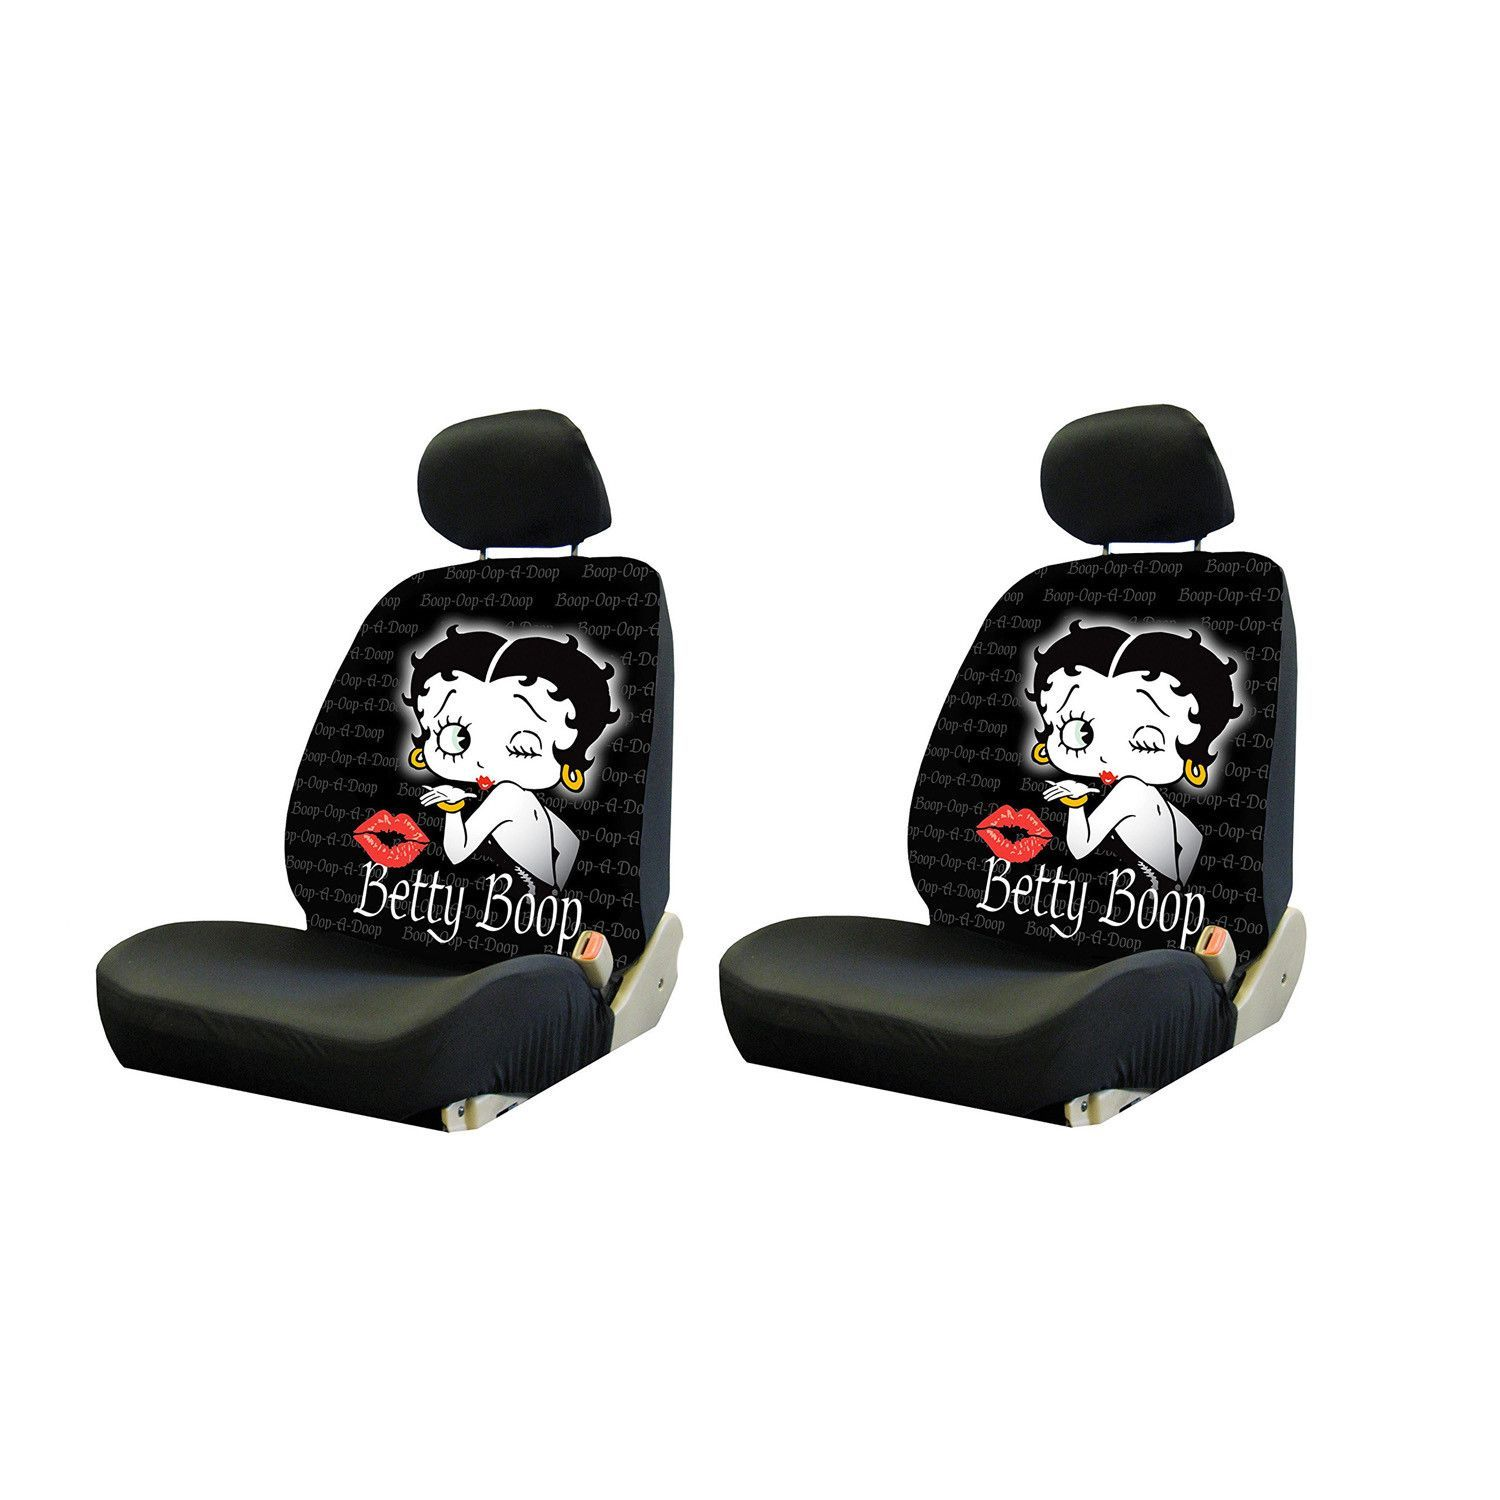 Betty Boop Timeless Seat Cover